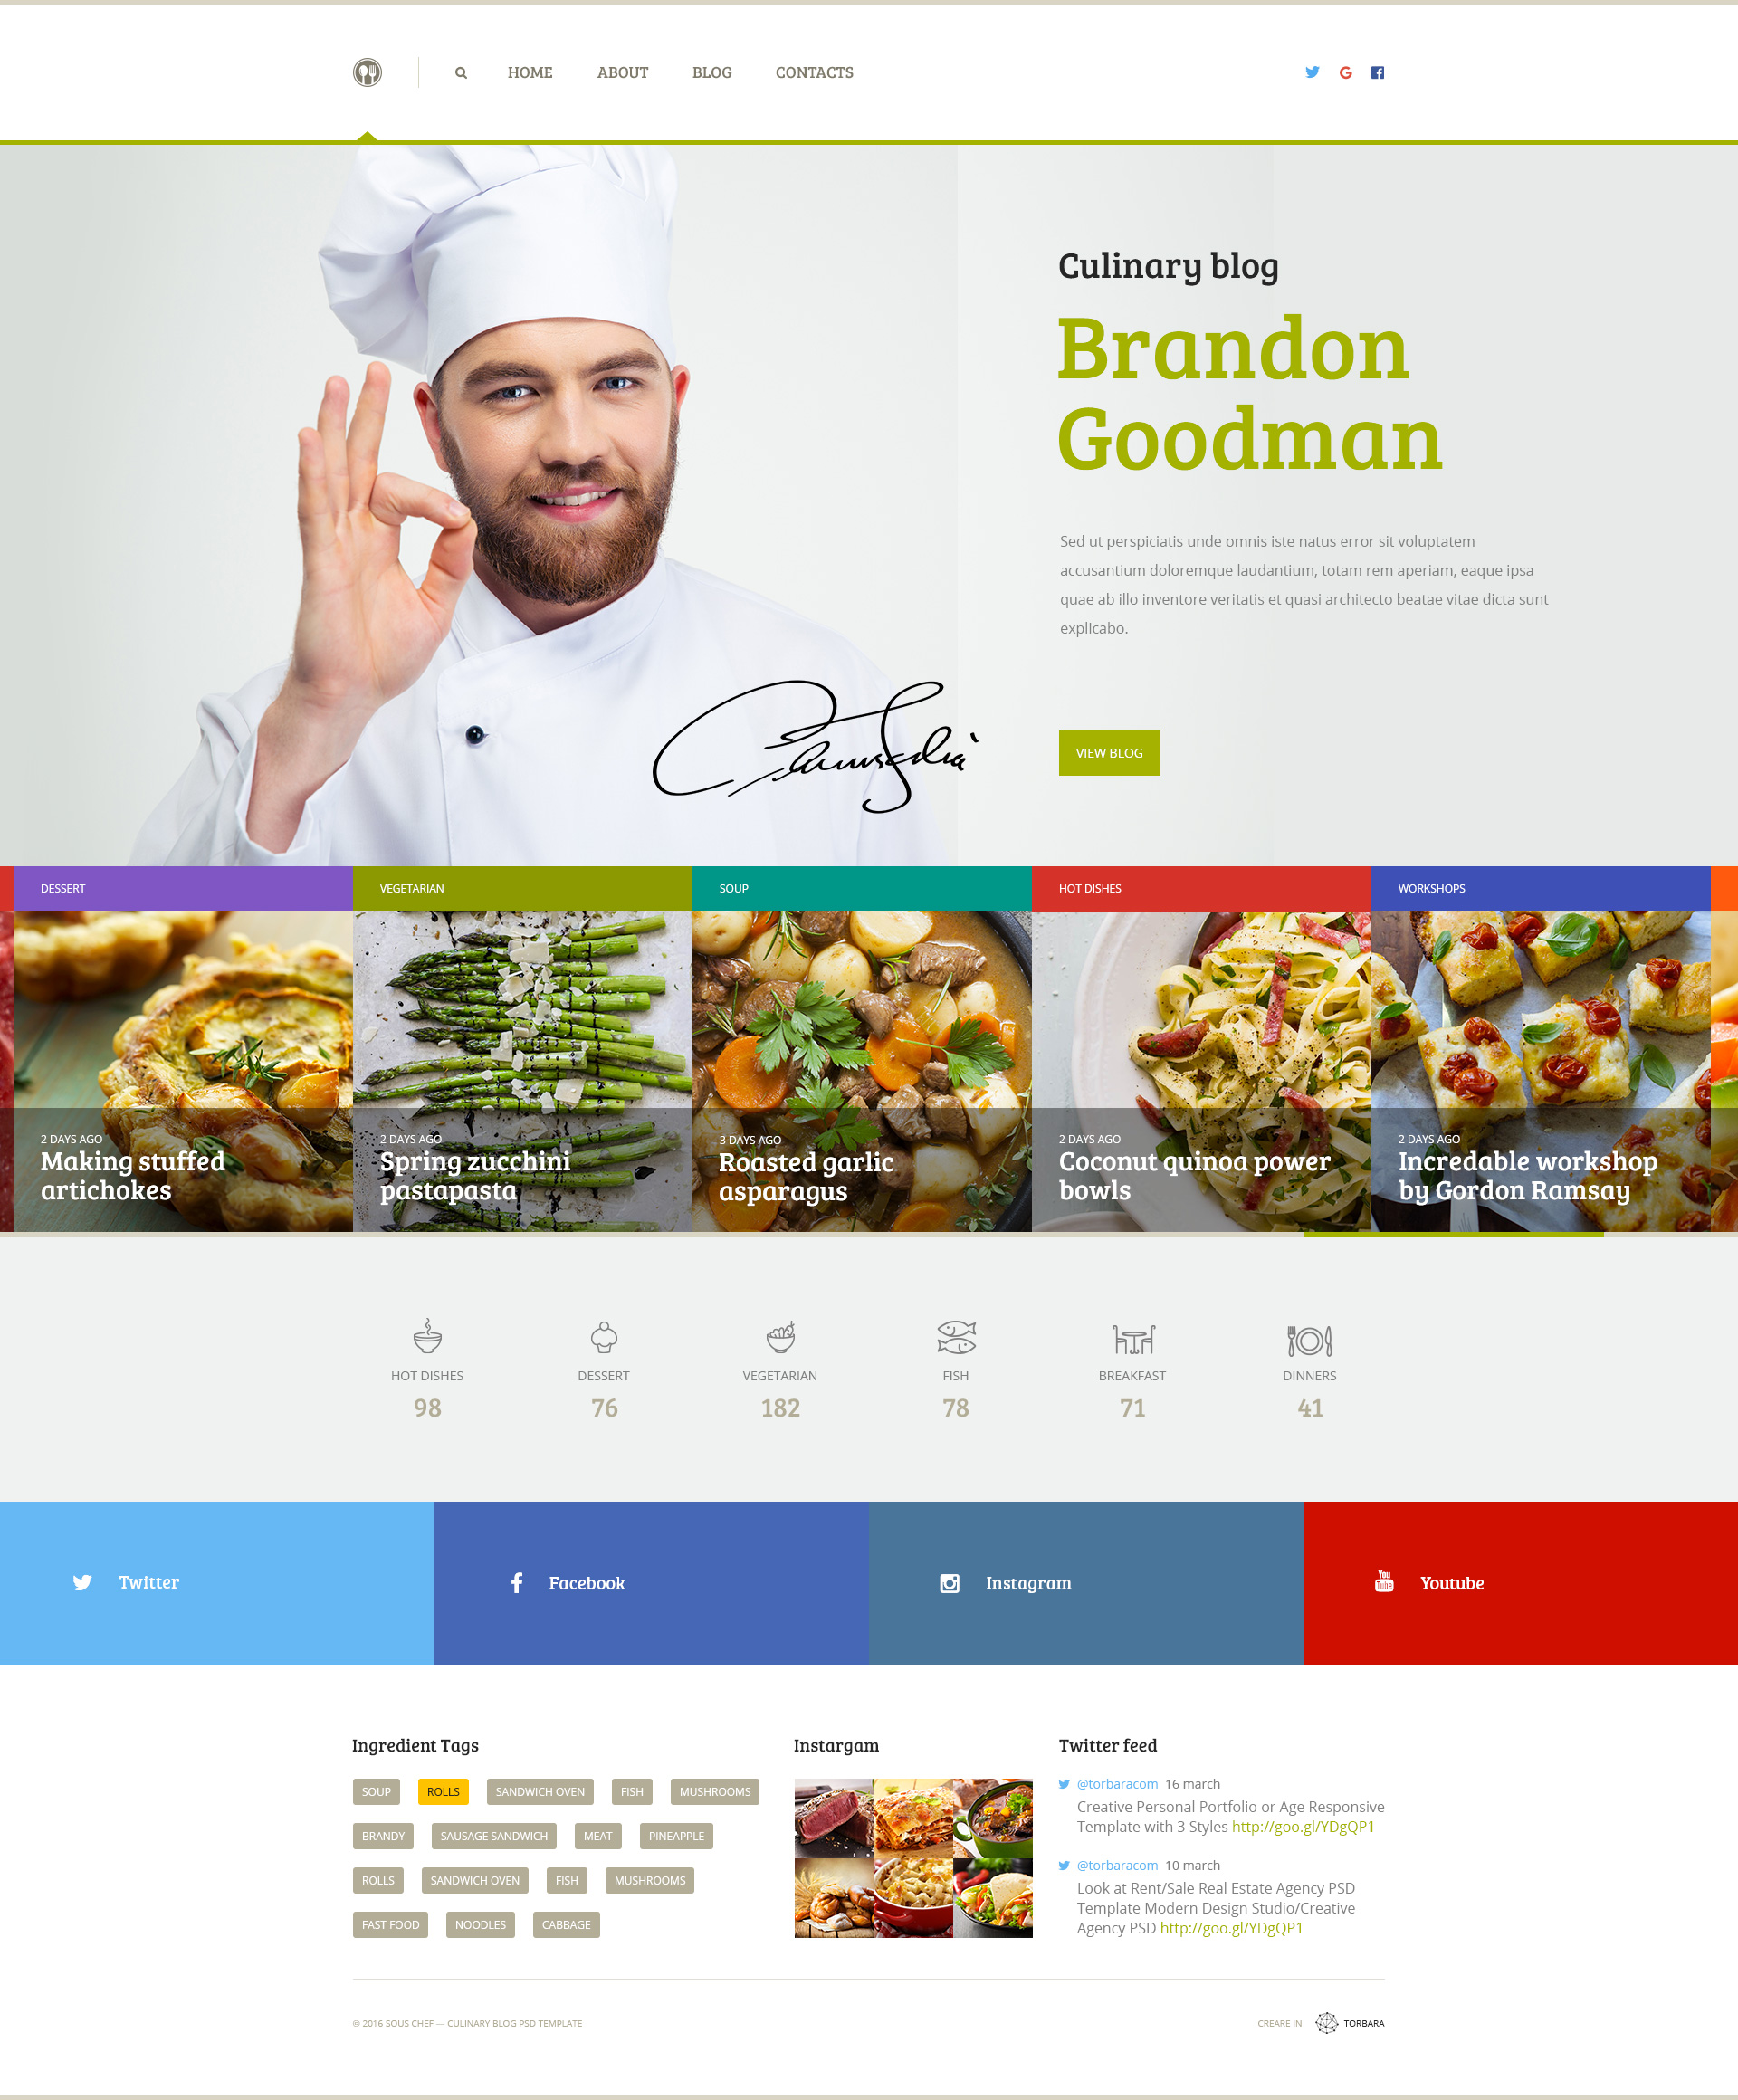 Sous Chef — Unique Clean PSD Template for Culinary Blog by torbara